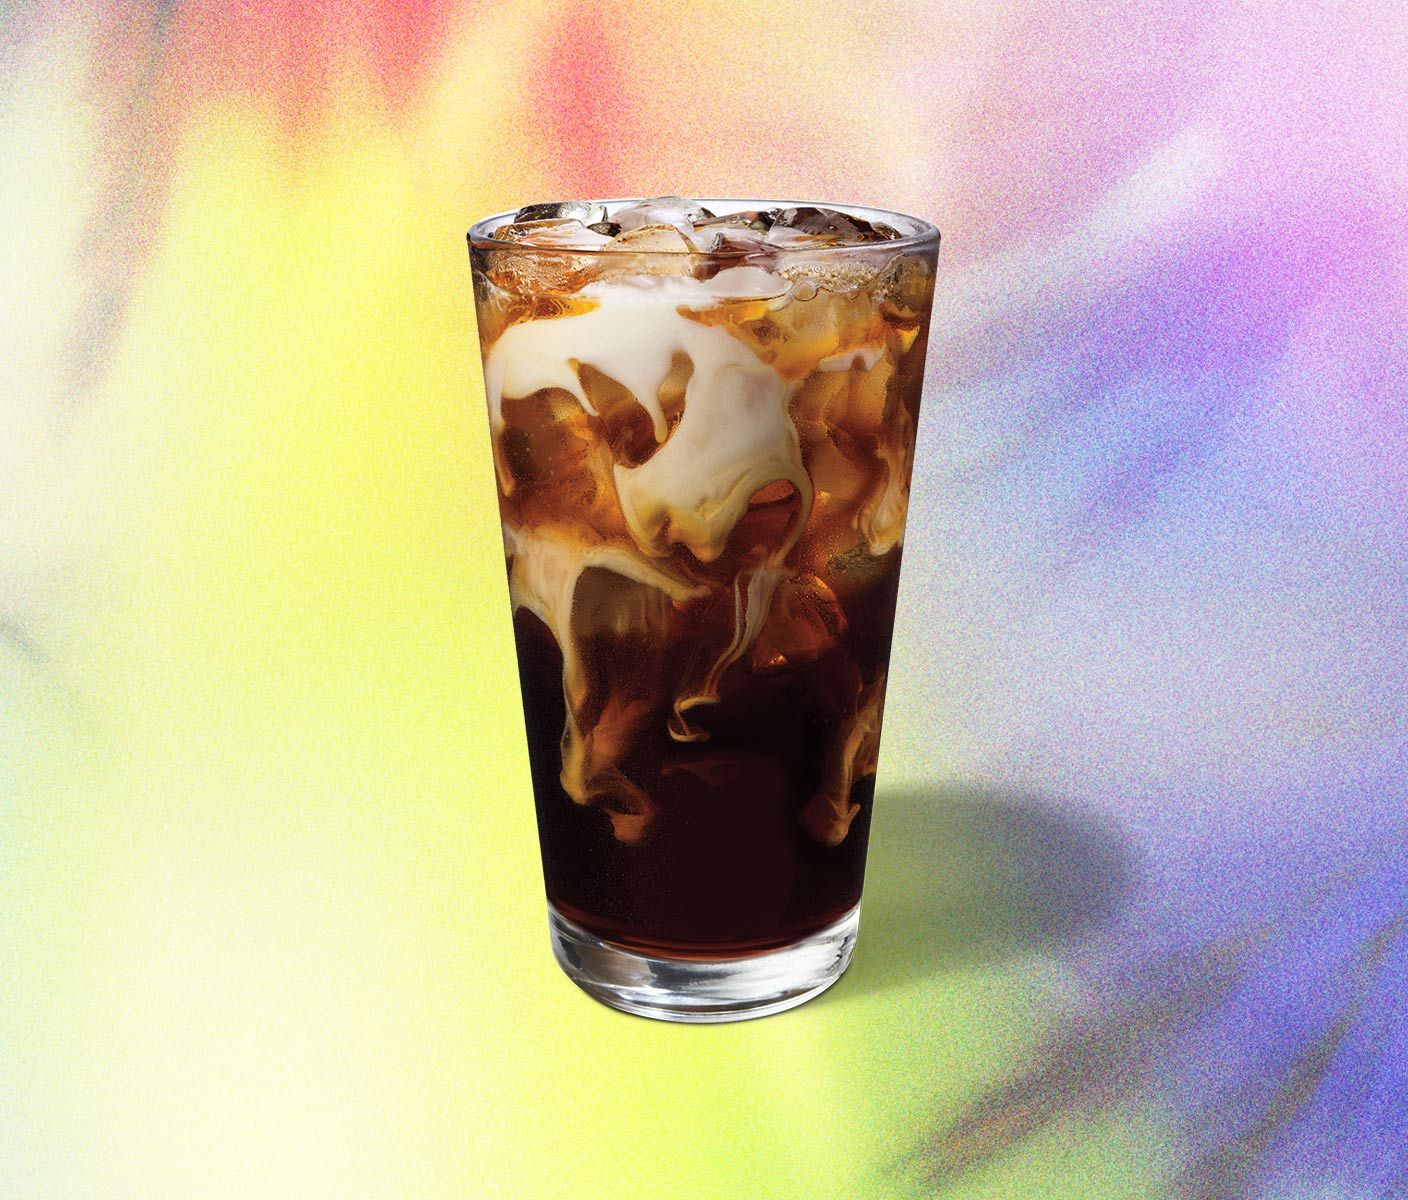 Swirls of iced coffee and cream in a glass.